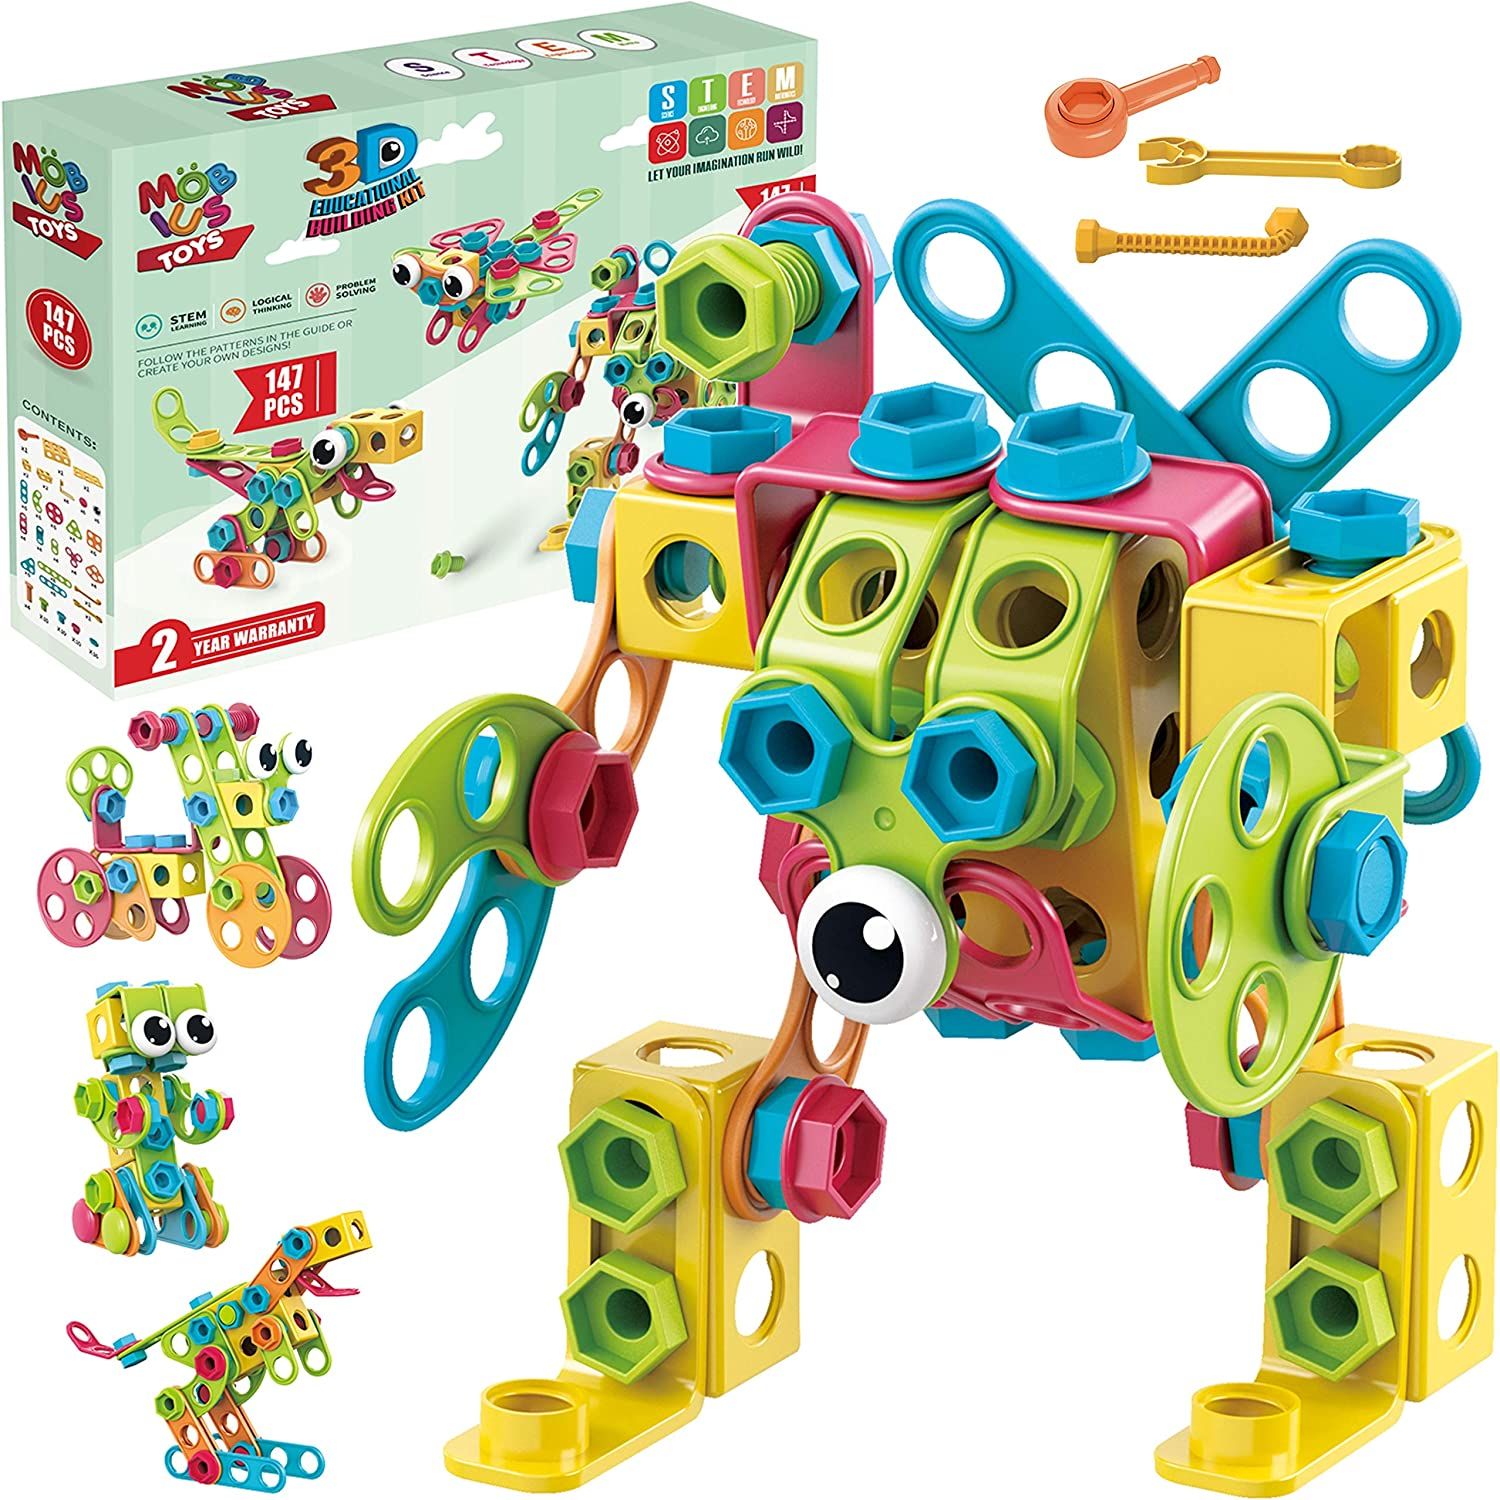 STEM Toys KIT 147 PCS Building Blocks Learning Set for Boys /& Girls 4 5 6 7 8 Years Old Educational Construction Set 34 Models Step-by-Step Guide Mobius Creative Engineering Toy